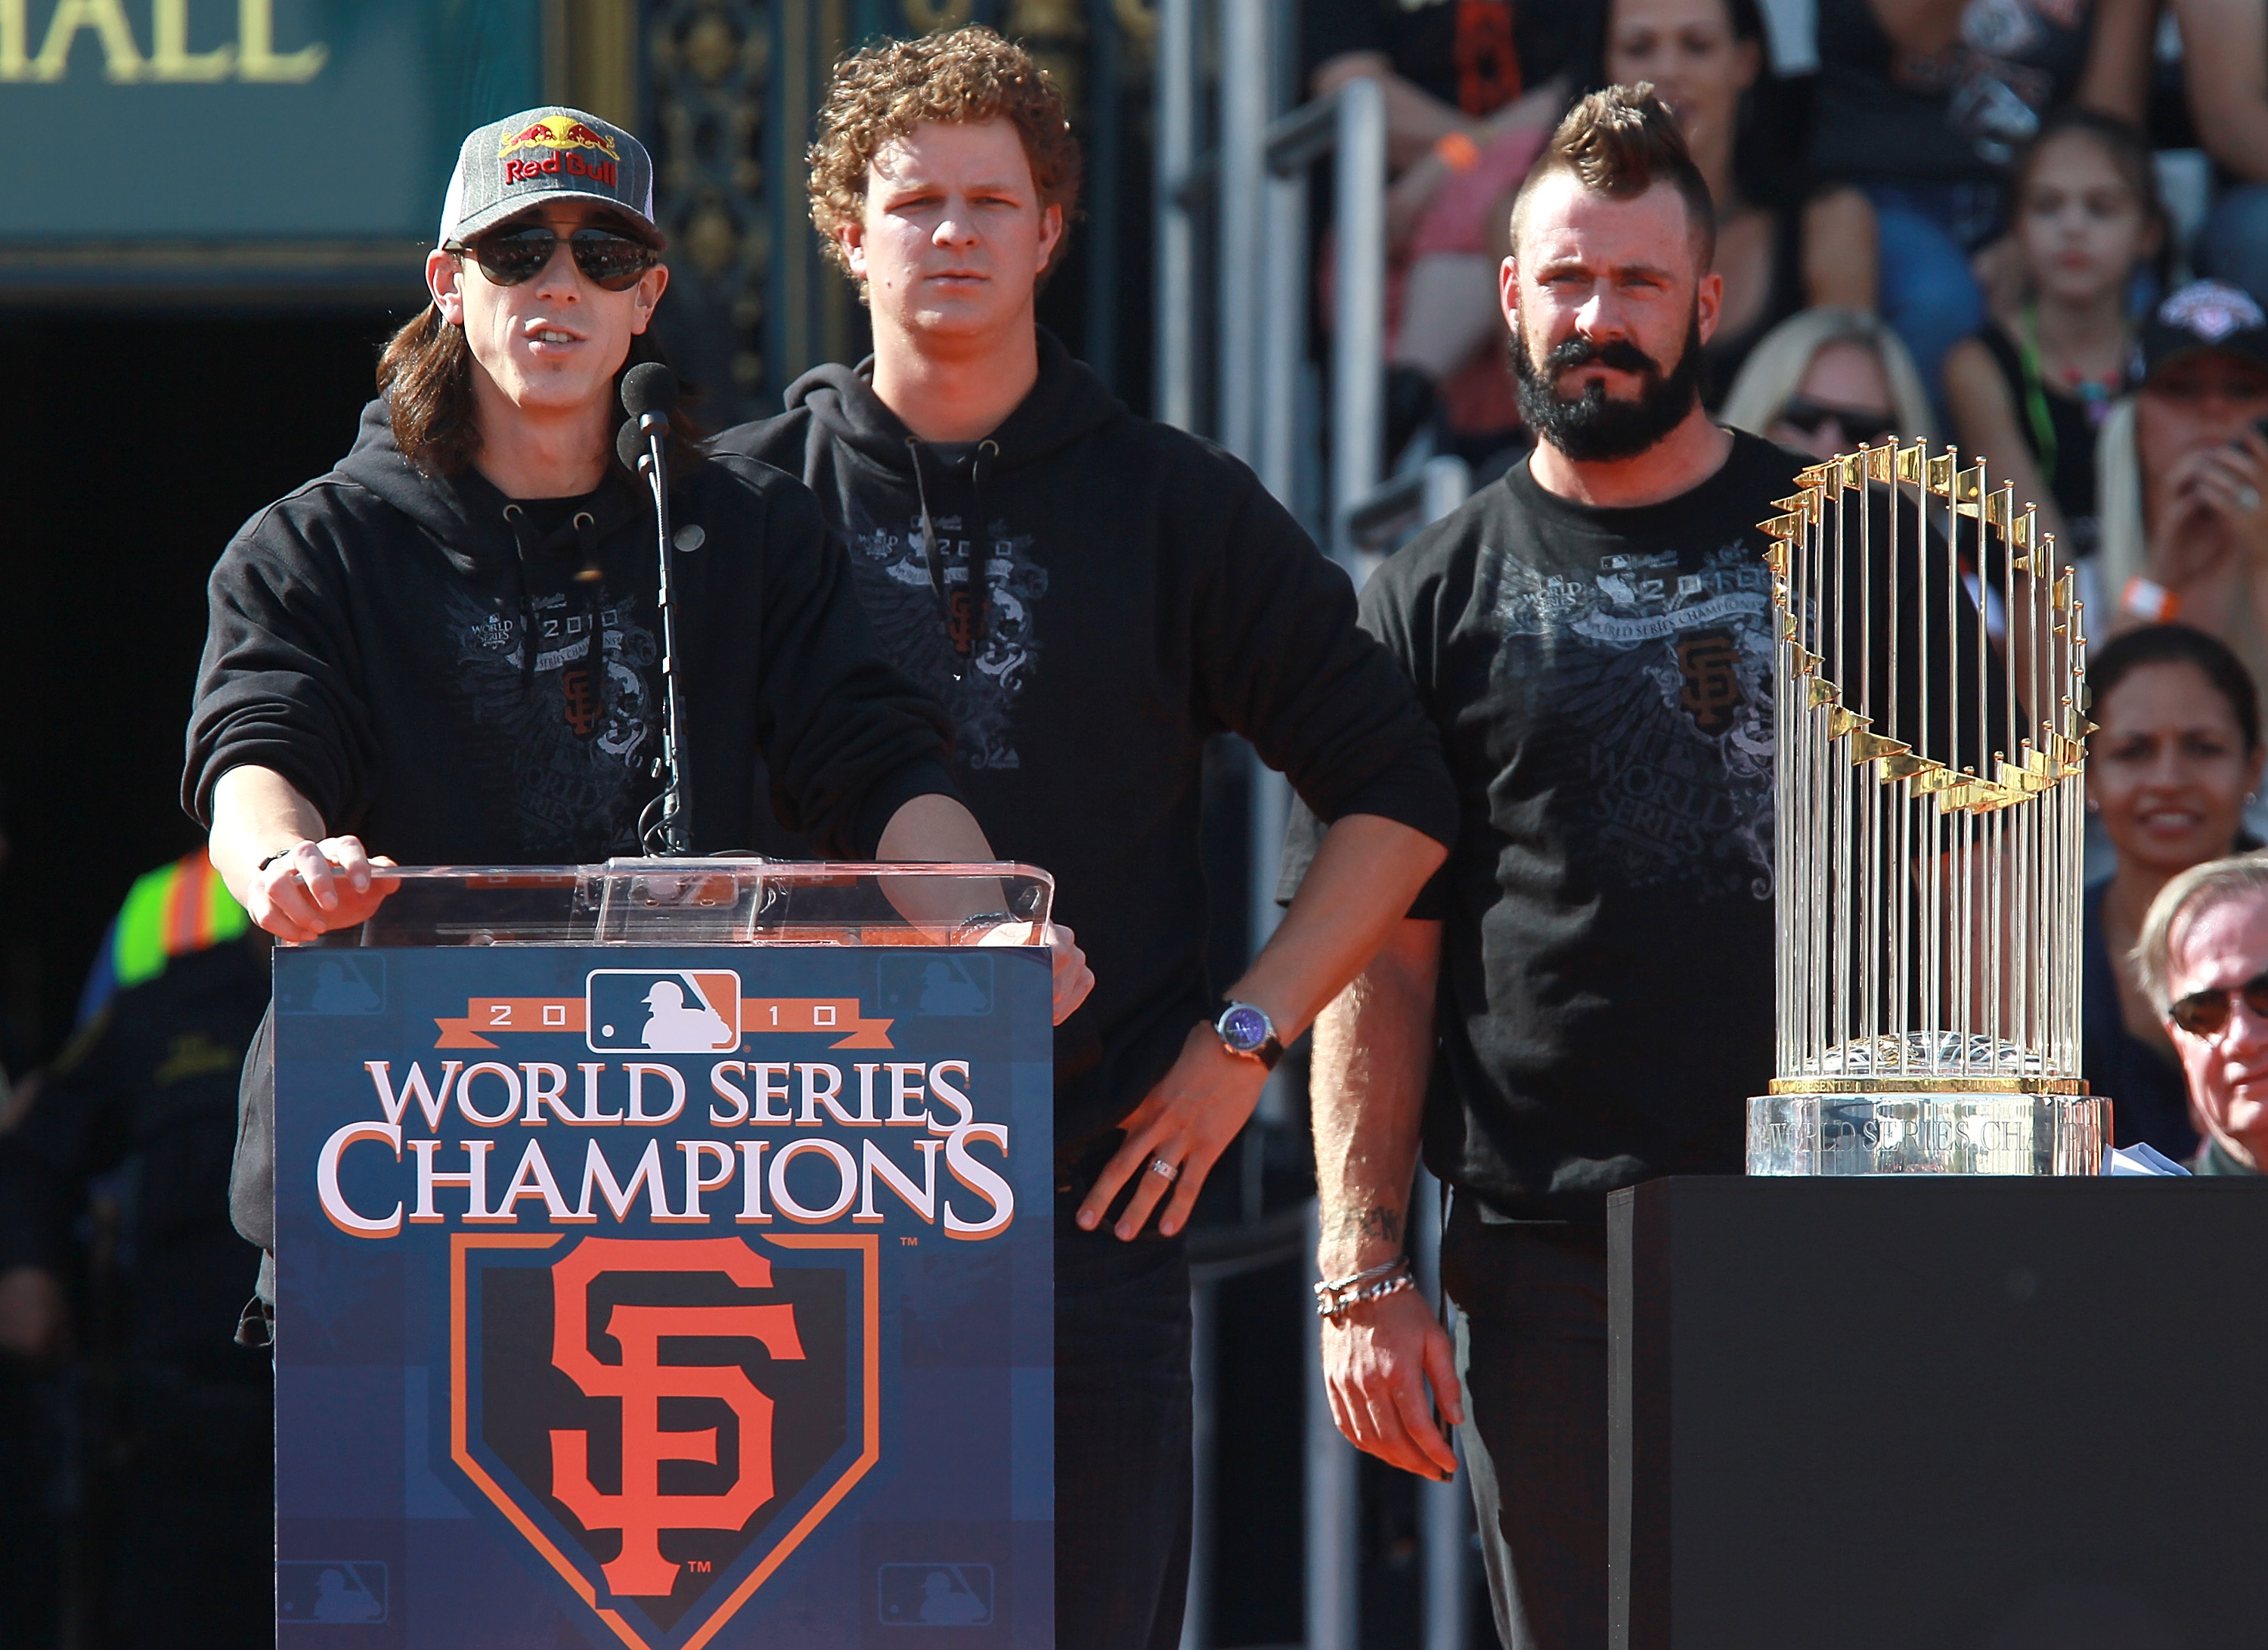 SAN FRANCISCO - NOVEMBER 03:  (L-R) San Francisco Giants pitchers Tim Lincecum, Matt Cain and Brian Wilson speak to fans outside San Francisco city hall during the Giants' victory parade and celebration on November 3, 2010 in San Francisco, California. Th